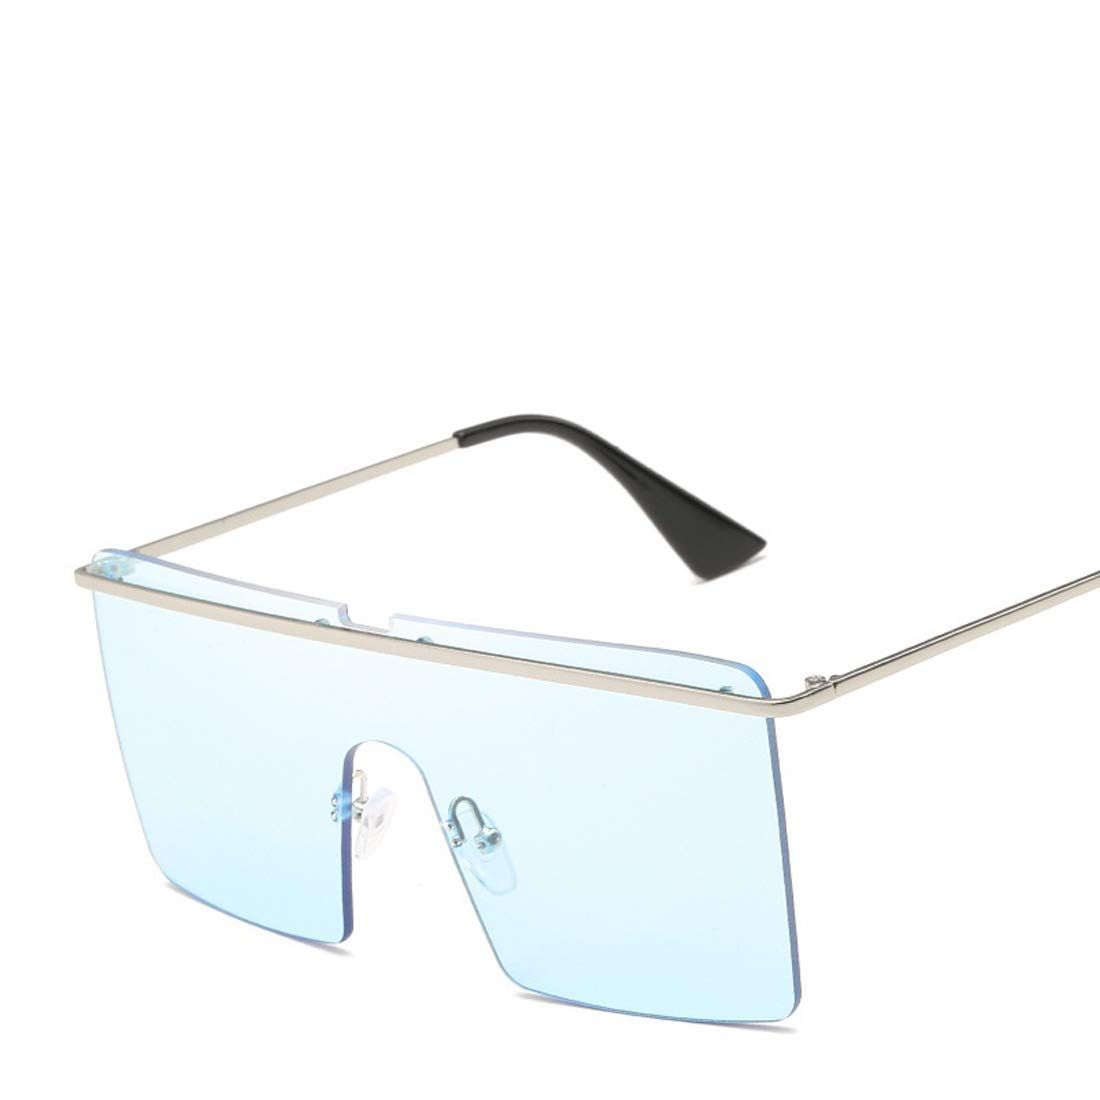 Wsunglass New fashions conjoined sunglasses high definition sunglasses sea fashion fashionable ladies and fash/_3